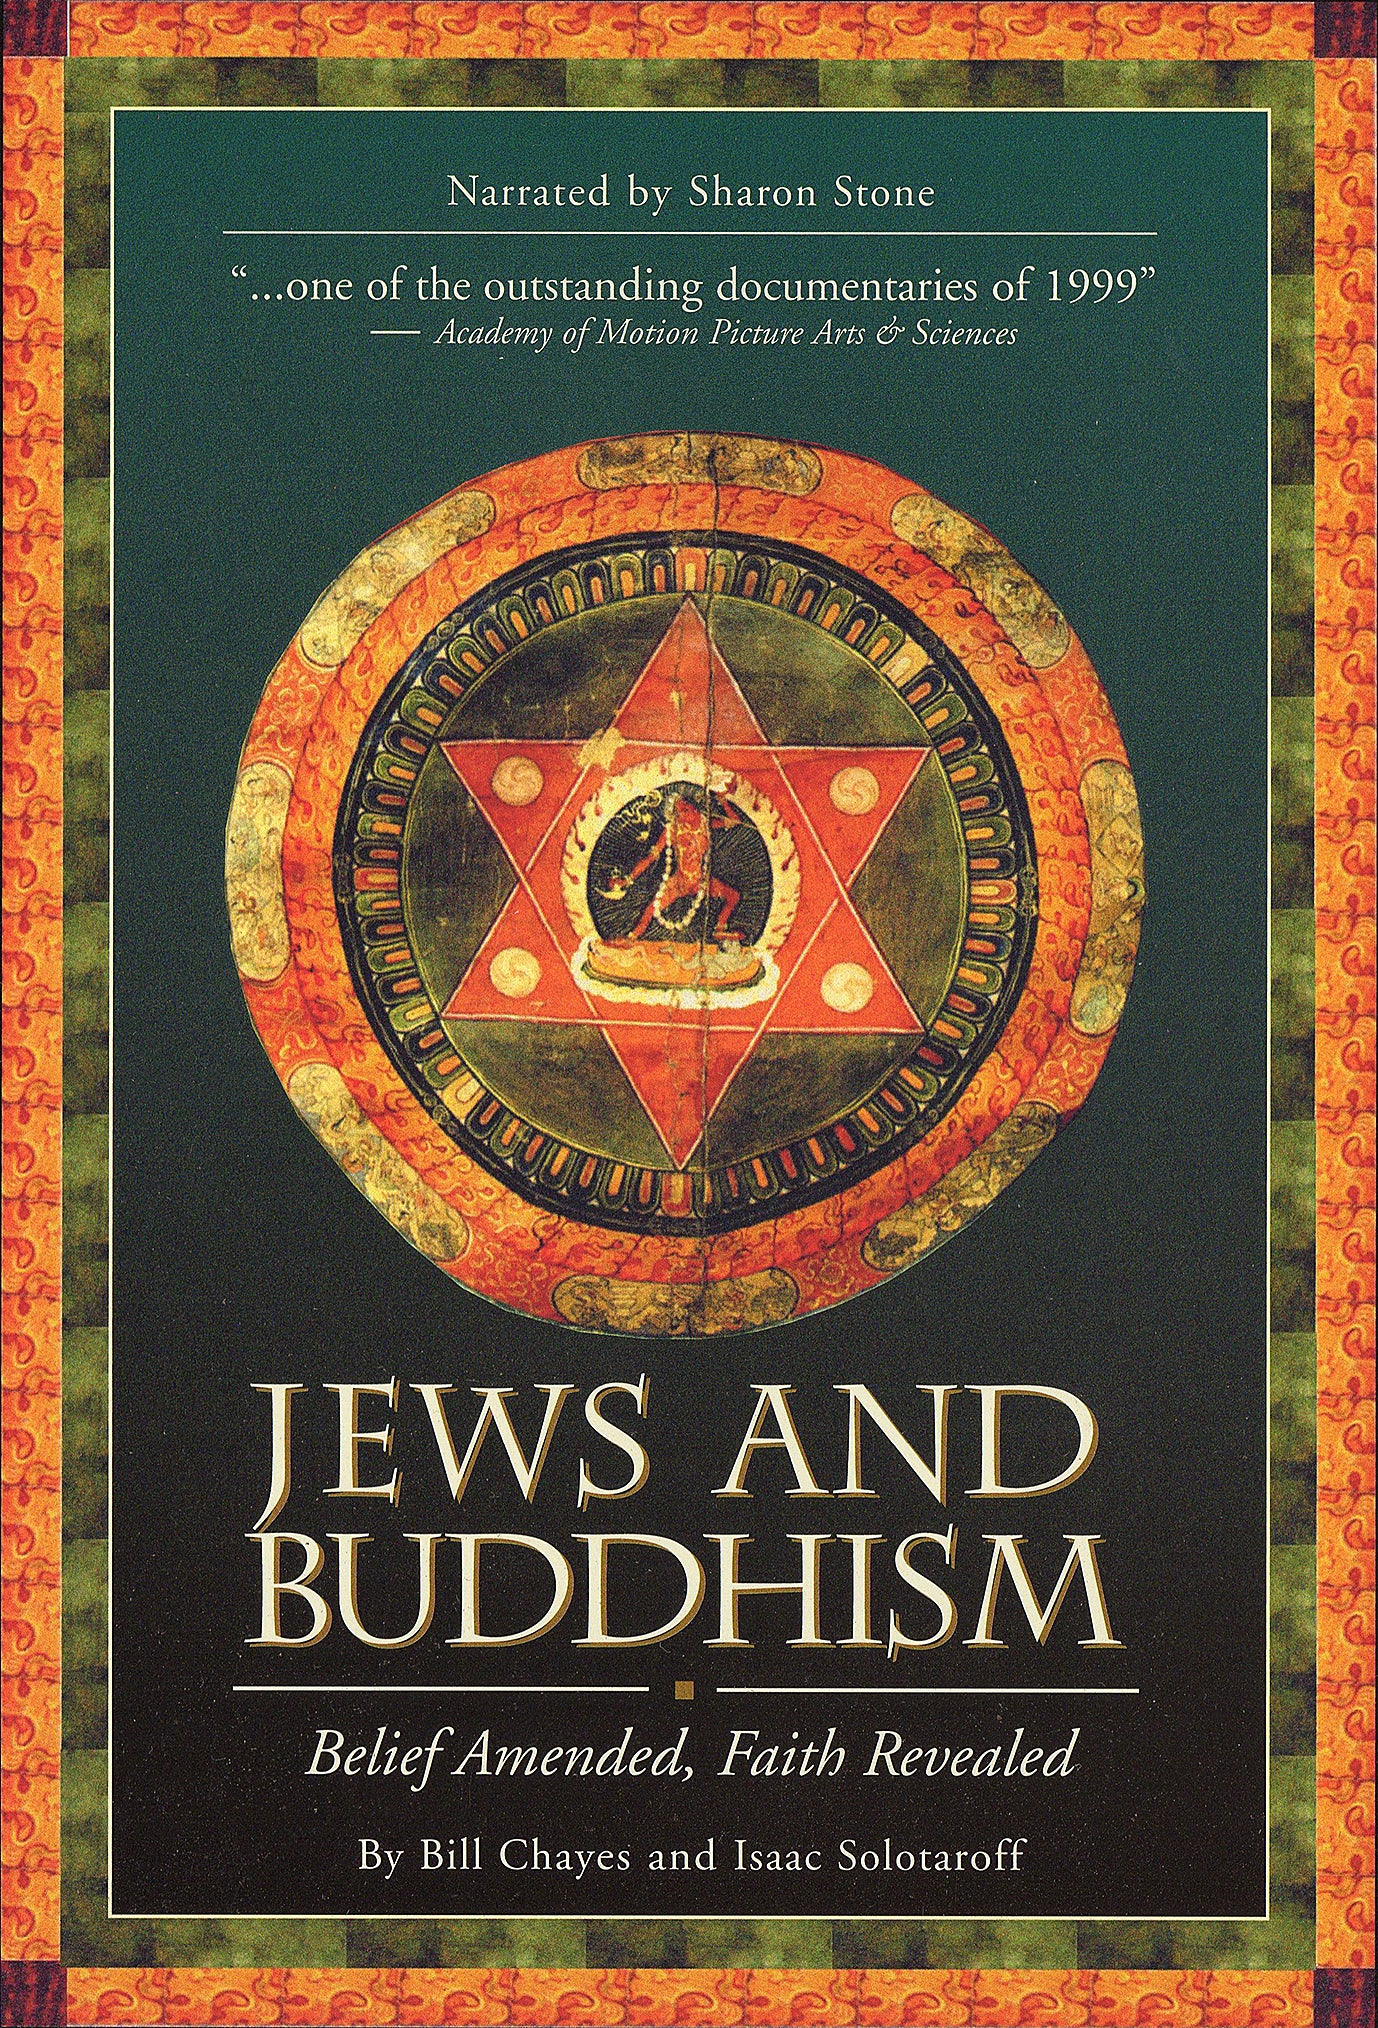 Jews and Buddhism